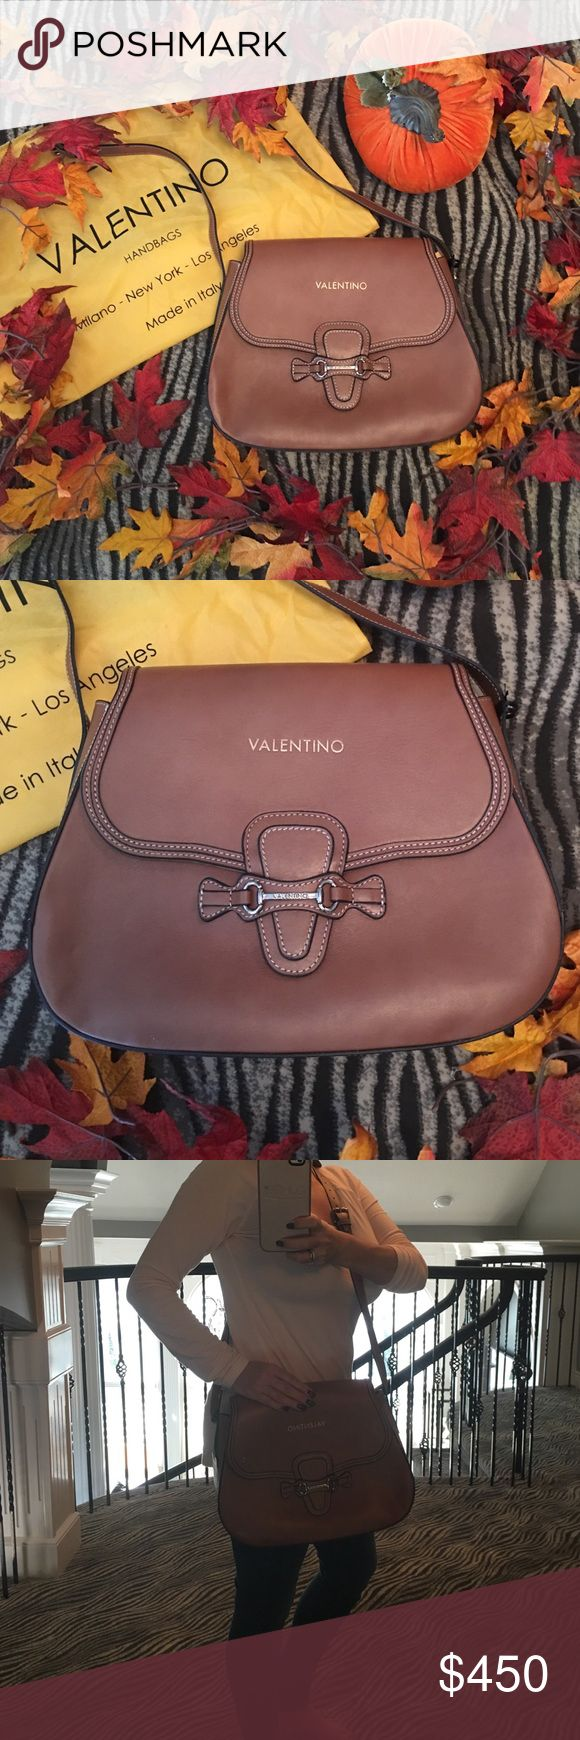 🍁💯AUTHENTIC Valentino Bag🍁 🍁Perfect for fall..... NWT leather Valentino crossbody bag.  Rich cognac color, duster included!🍁No Trades! Valentino Bags Crossbody Bags